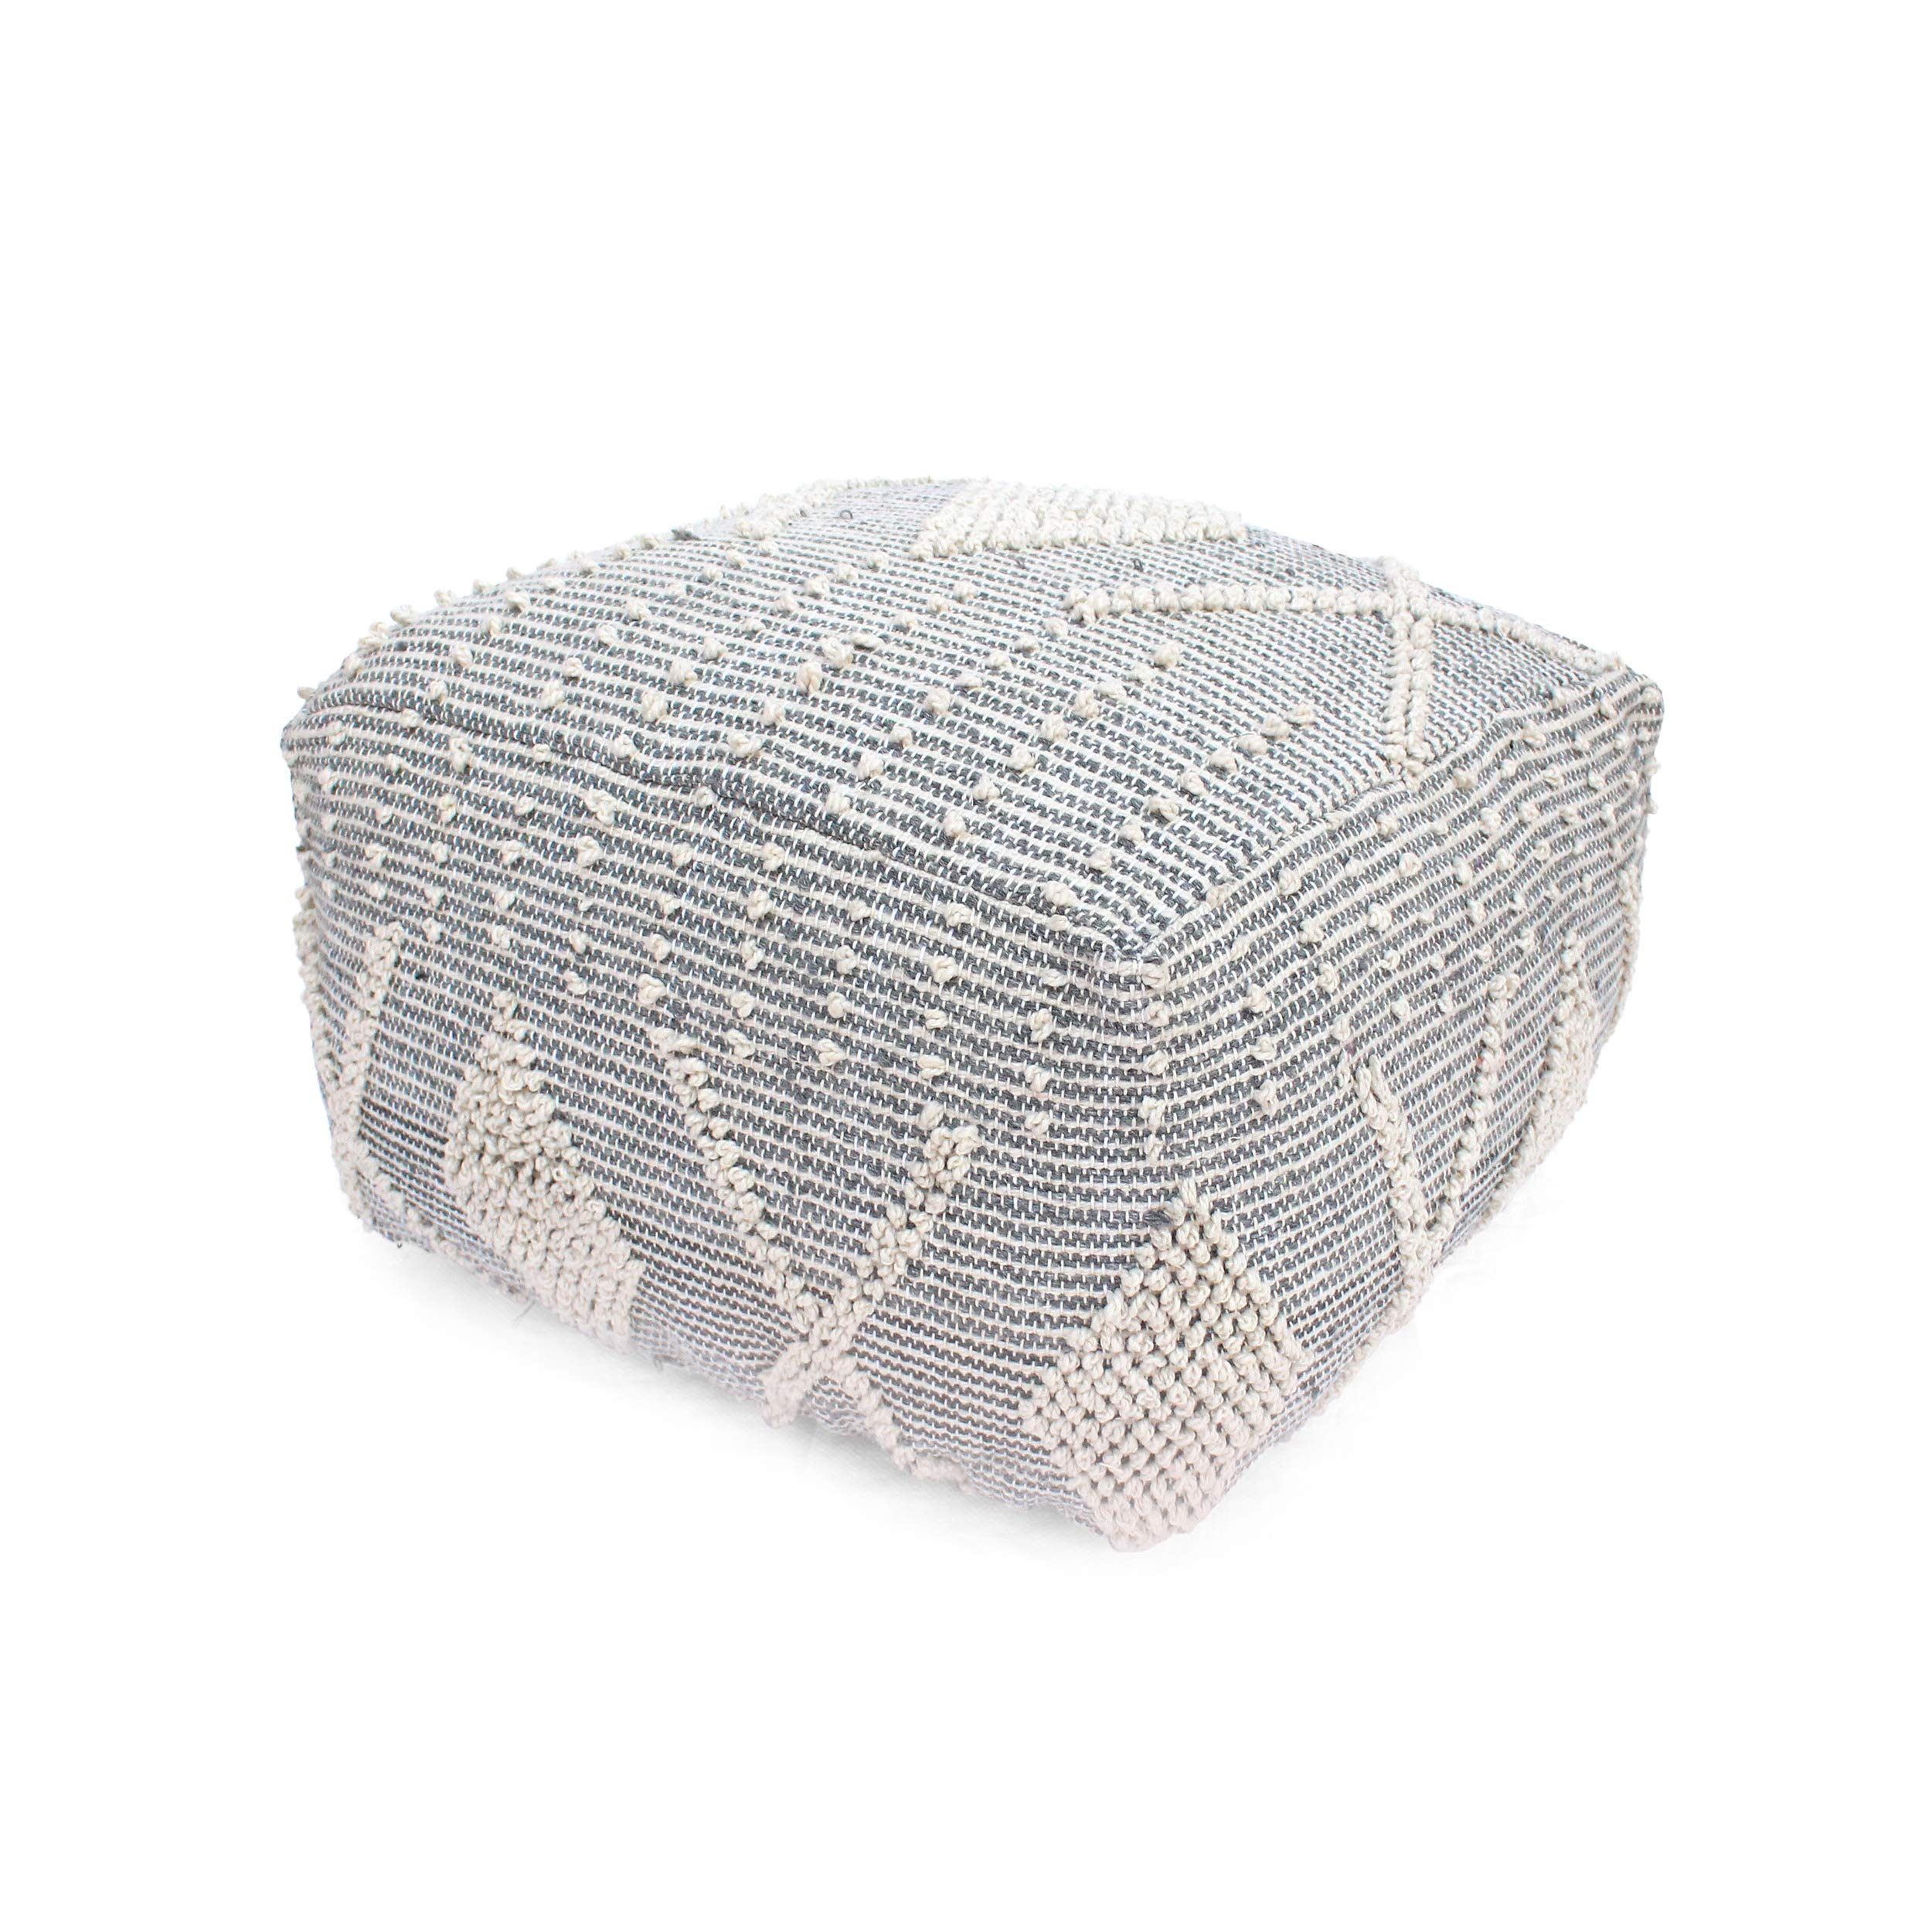 Great Deal Furniture Winnie Large Contemporary Faux Yarn Pouf Ottoman, Ivory and Gray by Great Deal Furniture